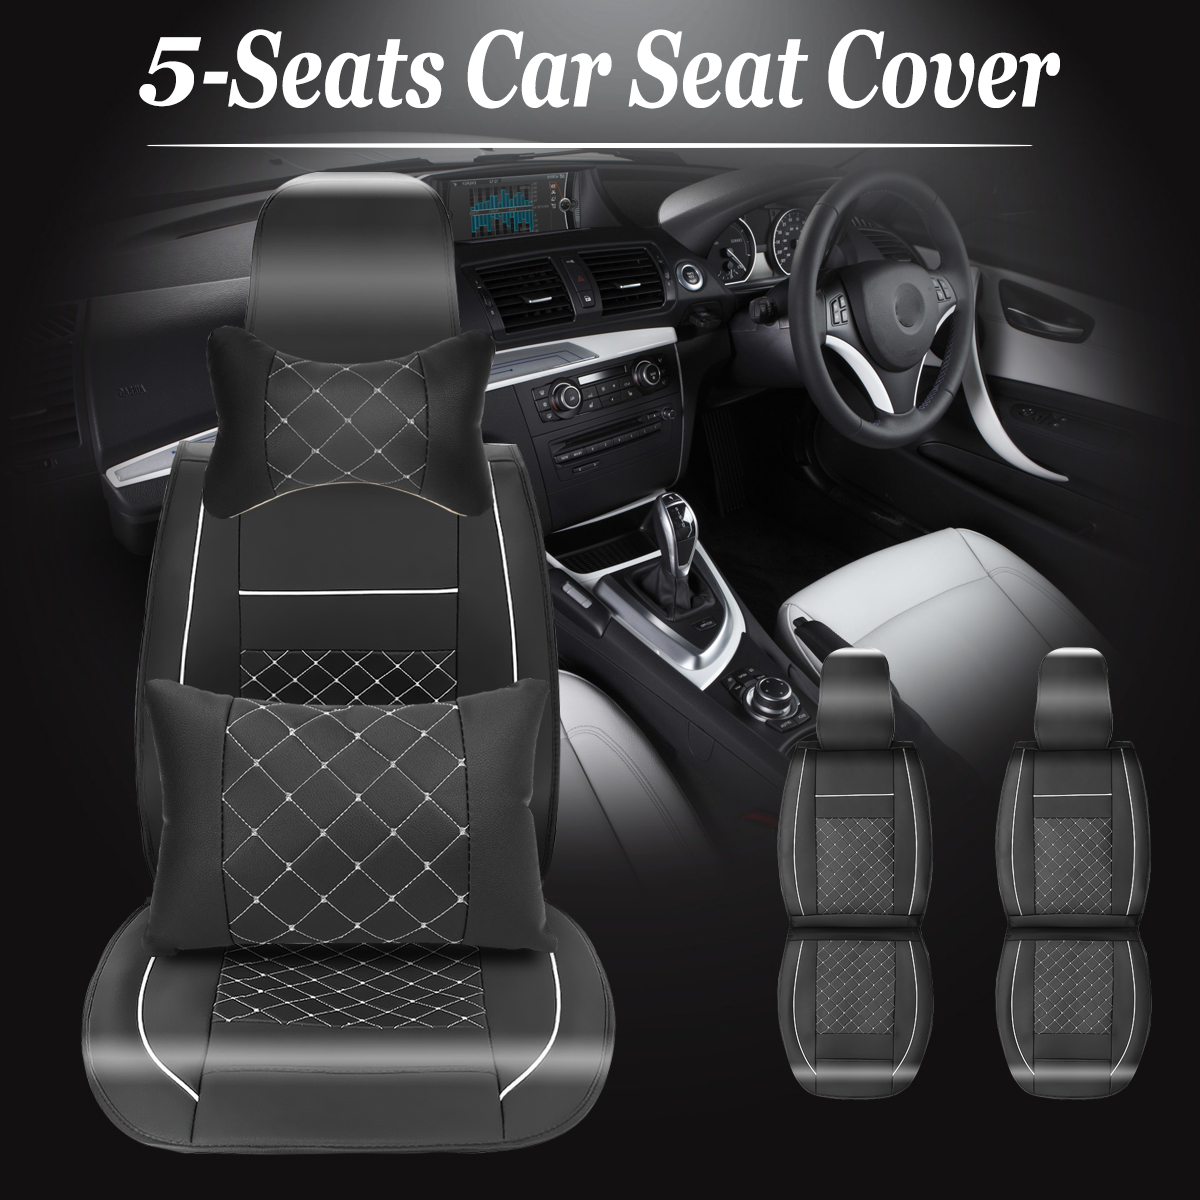 11PCS Full Set Universal PU Leather Car Seat Cushion Cover Front & Rear 5-Seats Auto Neck Lumbar Pillow Full Set for Car Sedan SUV Chevrolet Chevy Aveo Camaro Caprice Captiva etc.